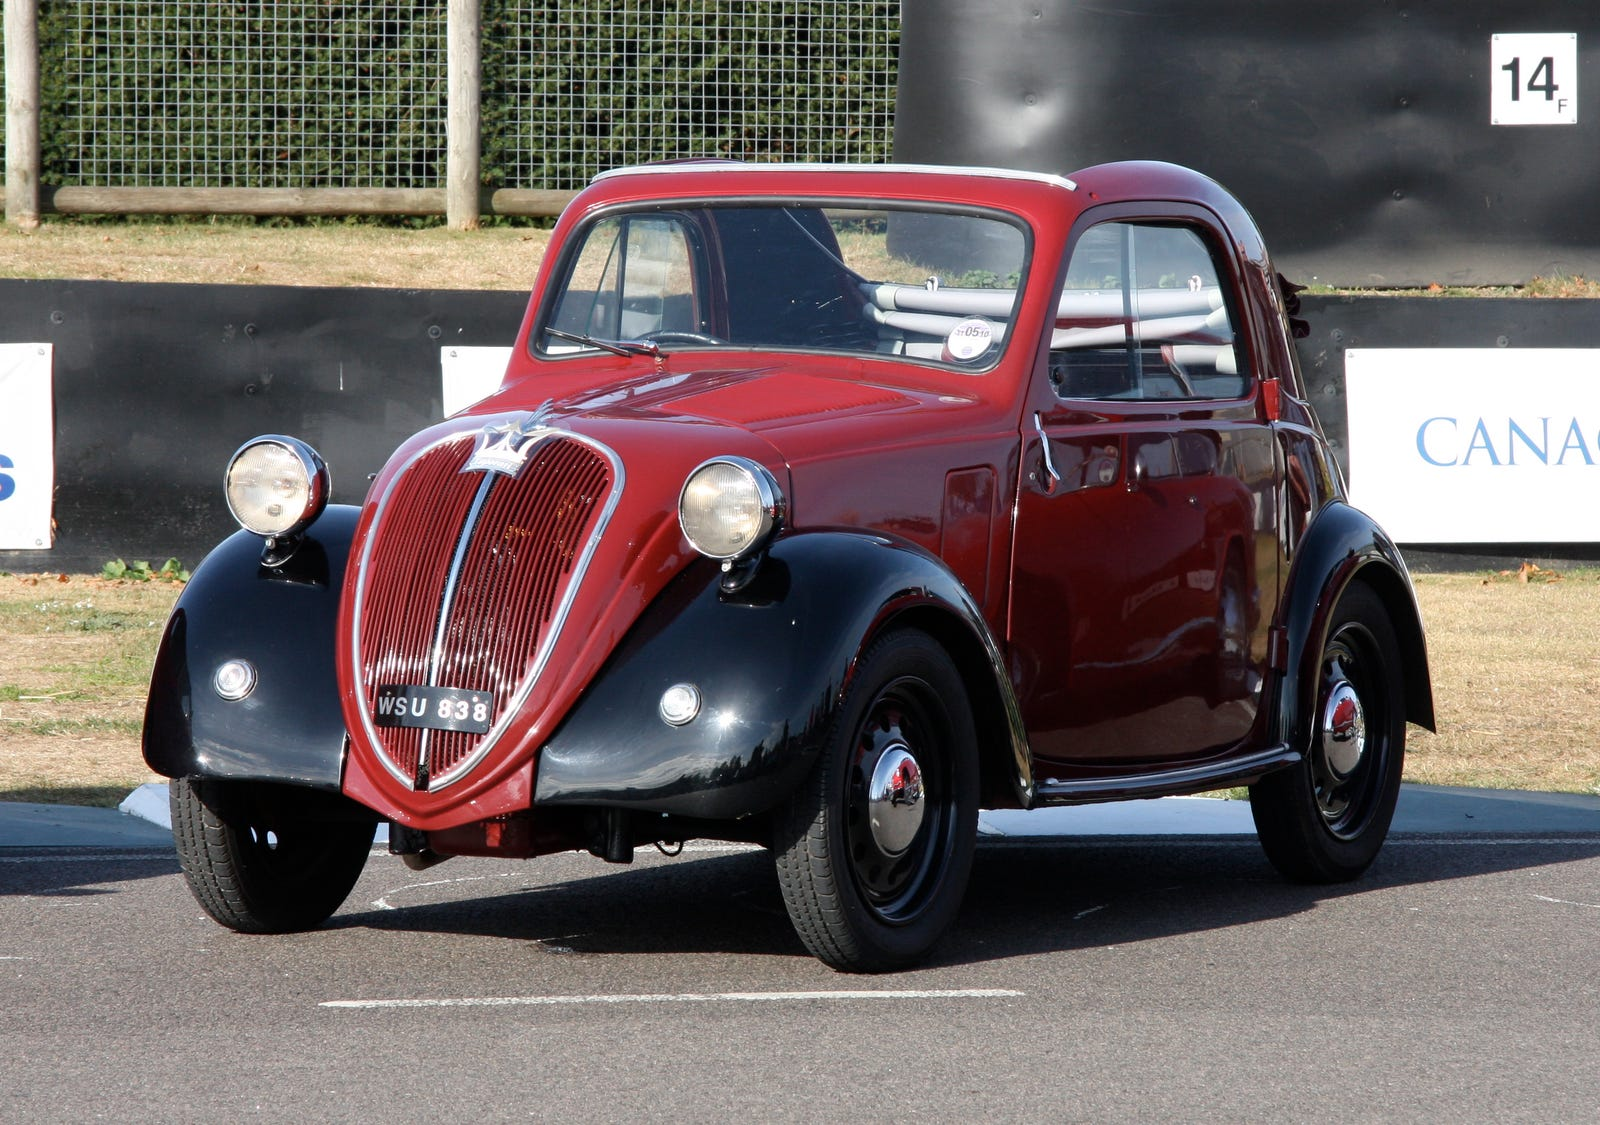 The original Topolino design wherefrom it got its 'Little Mouse' nickname - the 'Model A' was produced from '36-'48.